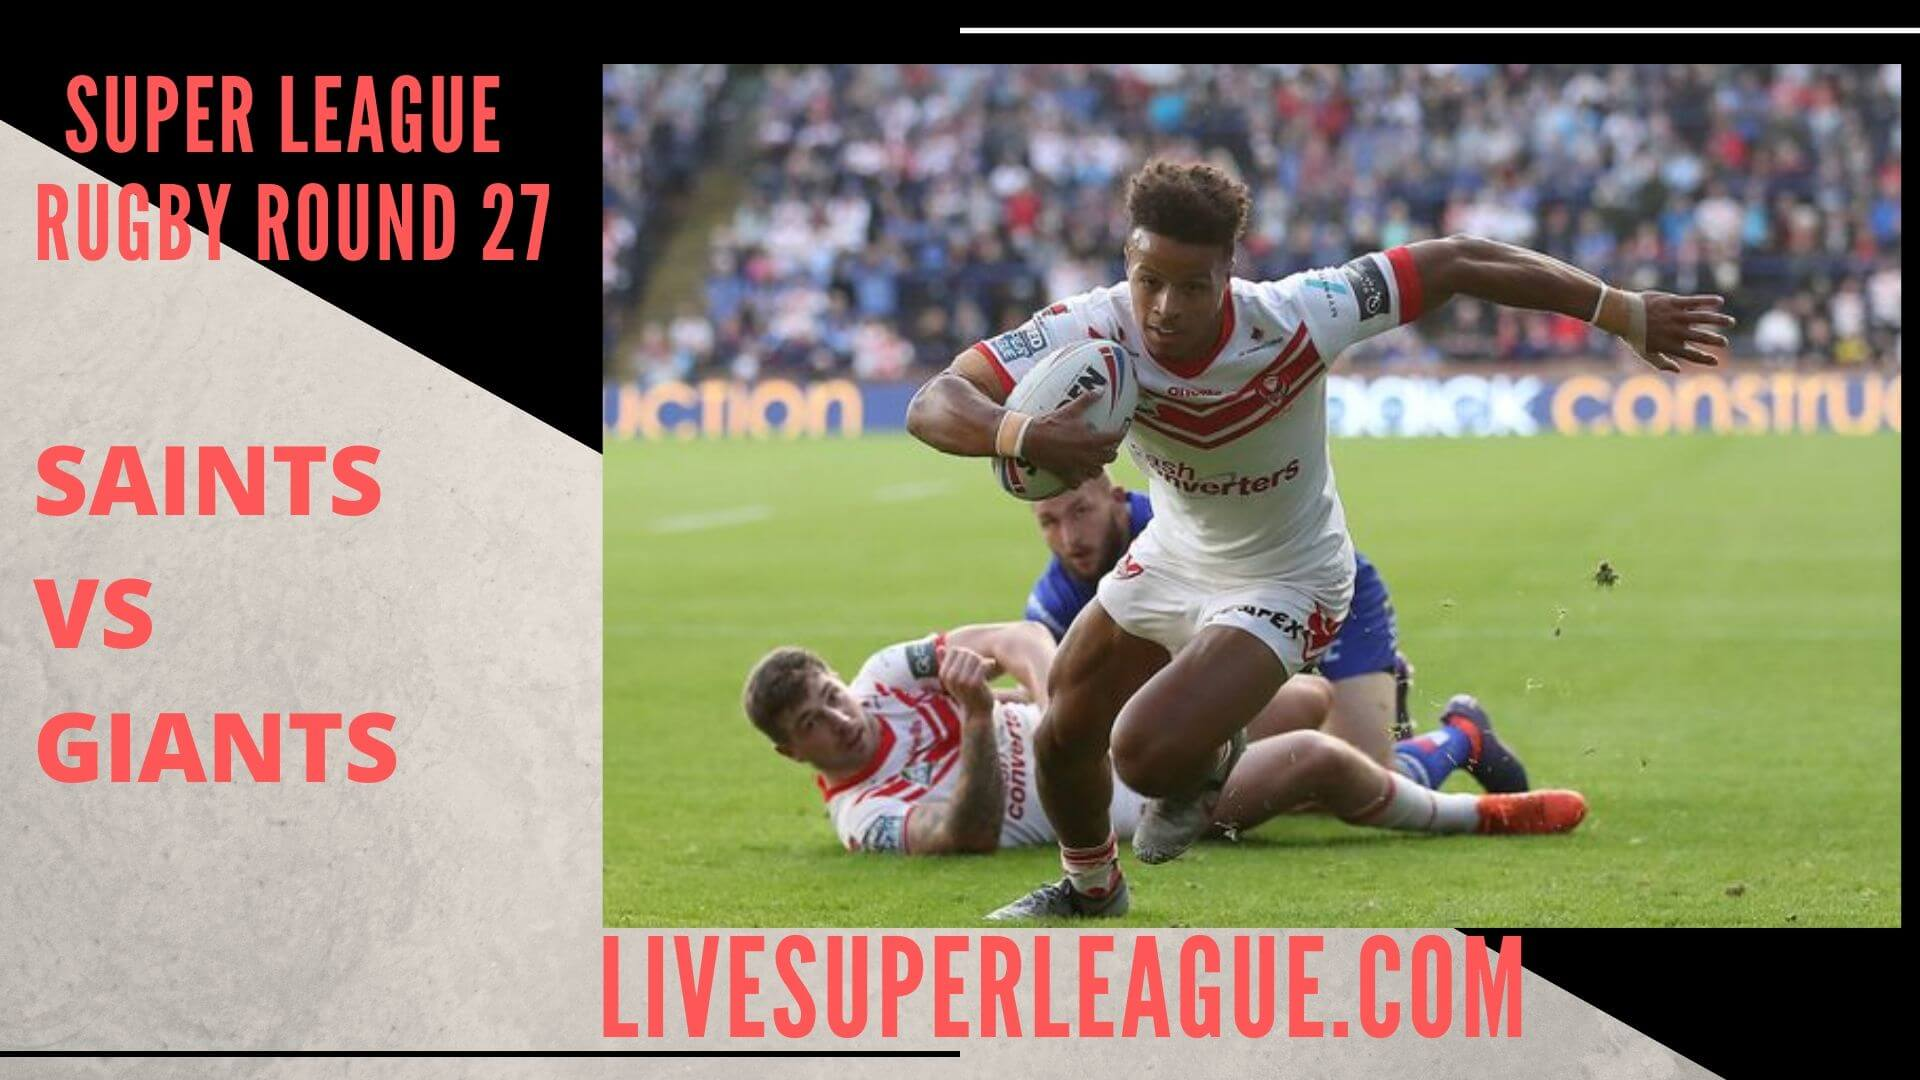 St Helens Vs Huddersfield Giants Live Stream | Round 27: Full Match Replay